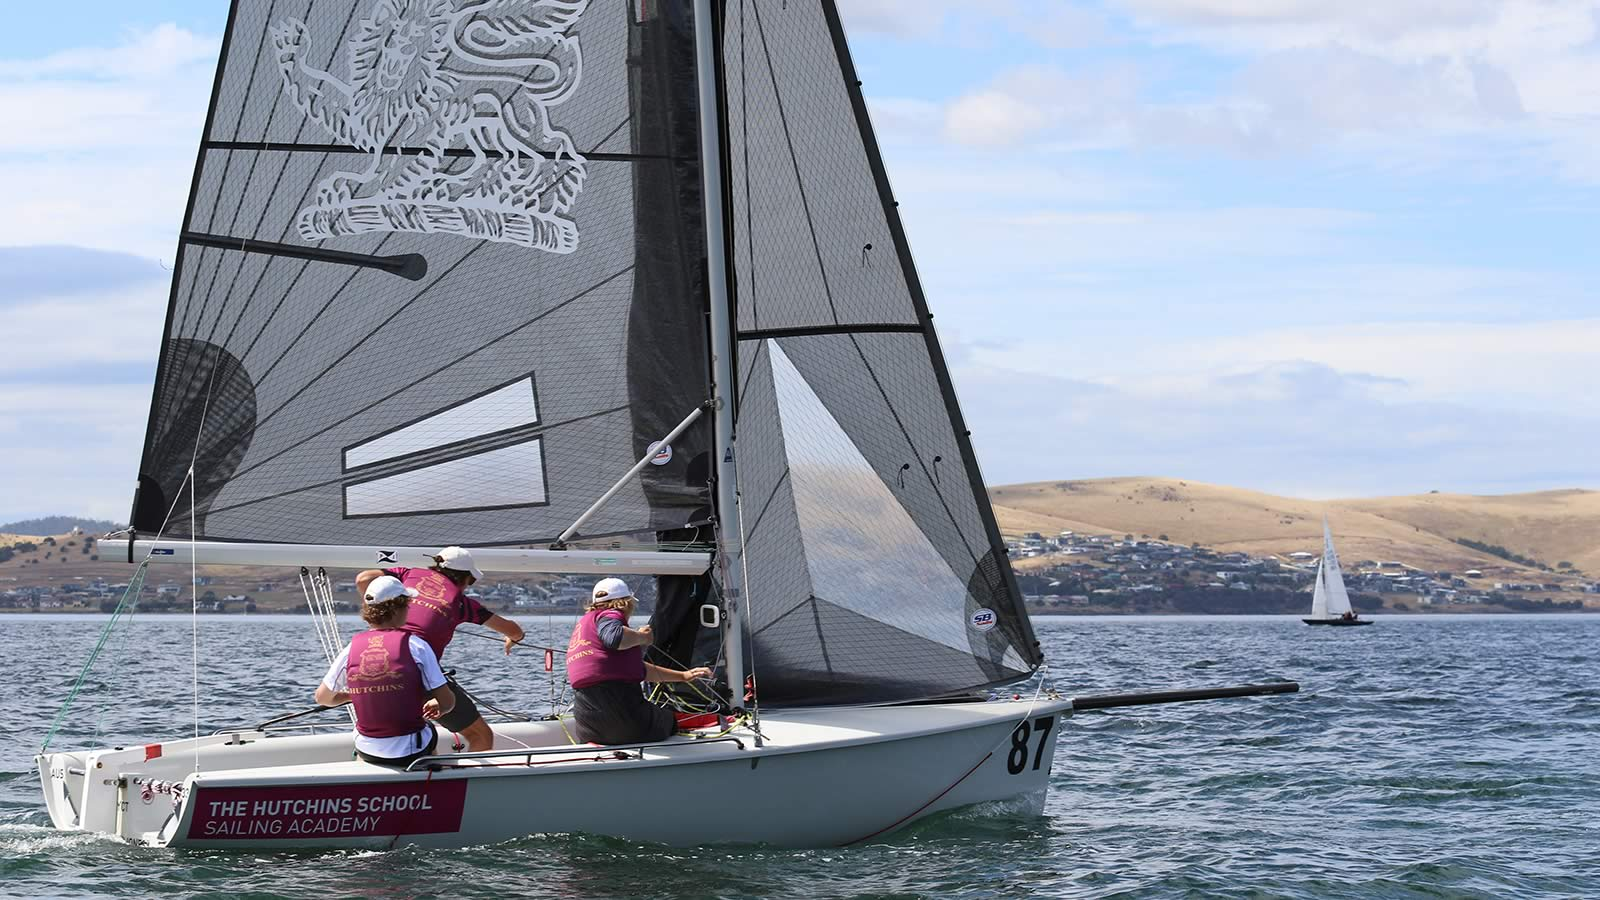 The Hutchins School Sailing: SB20 Tasmanian Championship